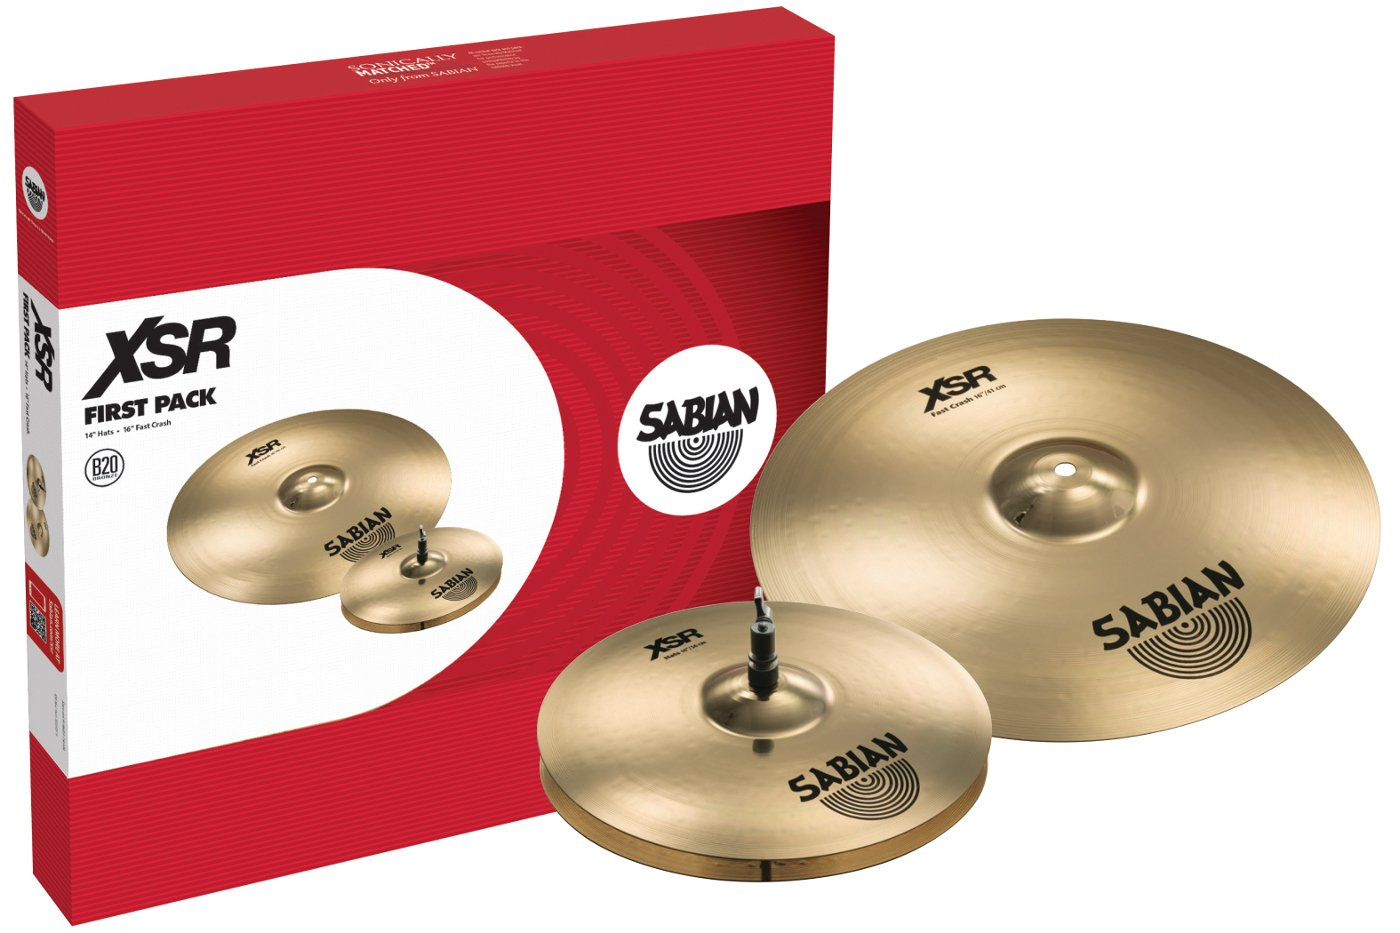 "Sabian XSR First Pack Cymbal Pack with 14"" XSR Hats, 16"" XSR Fast Crash XSR5011B"